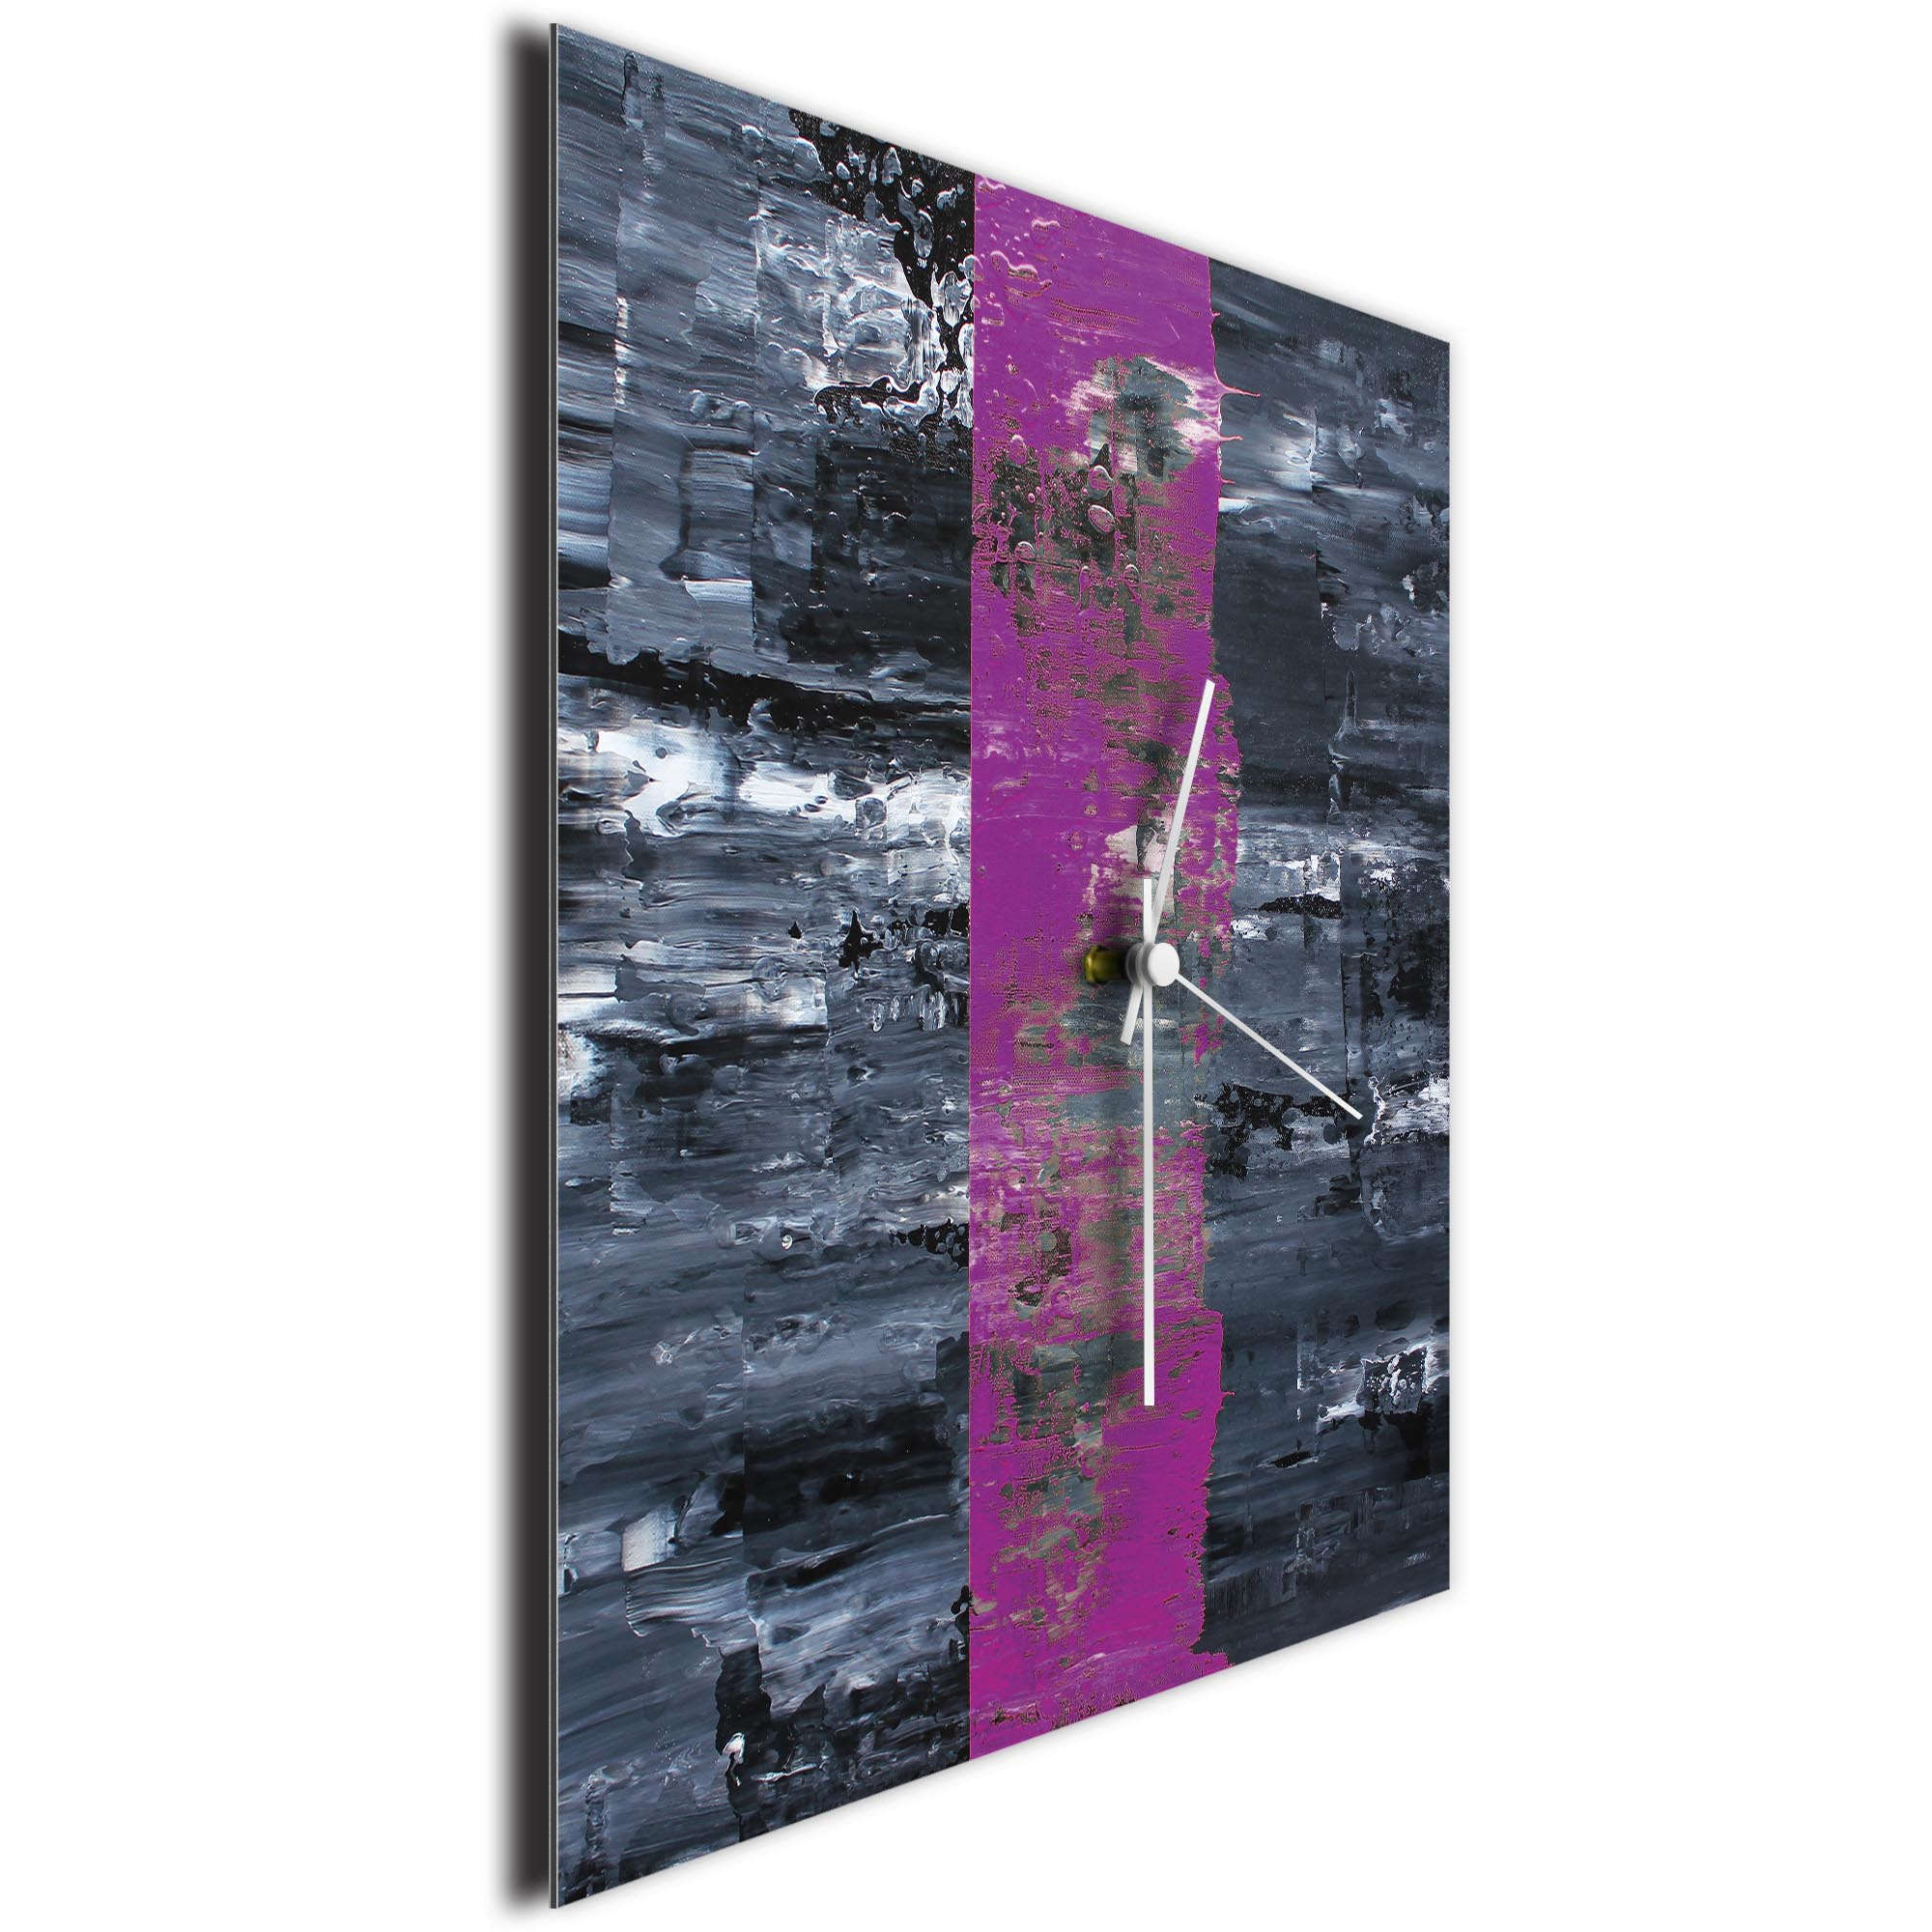 Purple Line Square Clock Large by Mendo Vasilevski - Urban Abstract Home Decor - Image 3